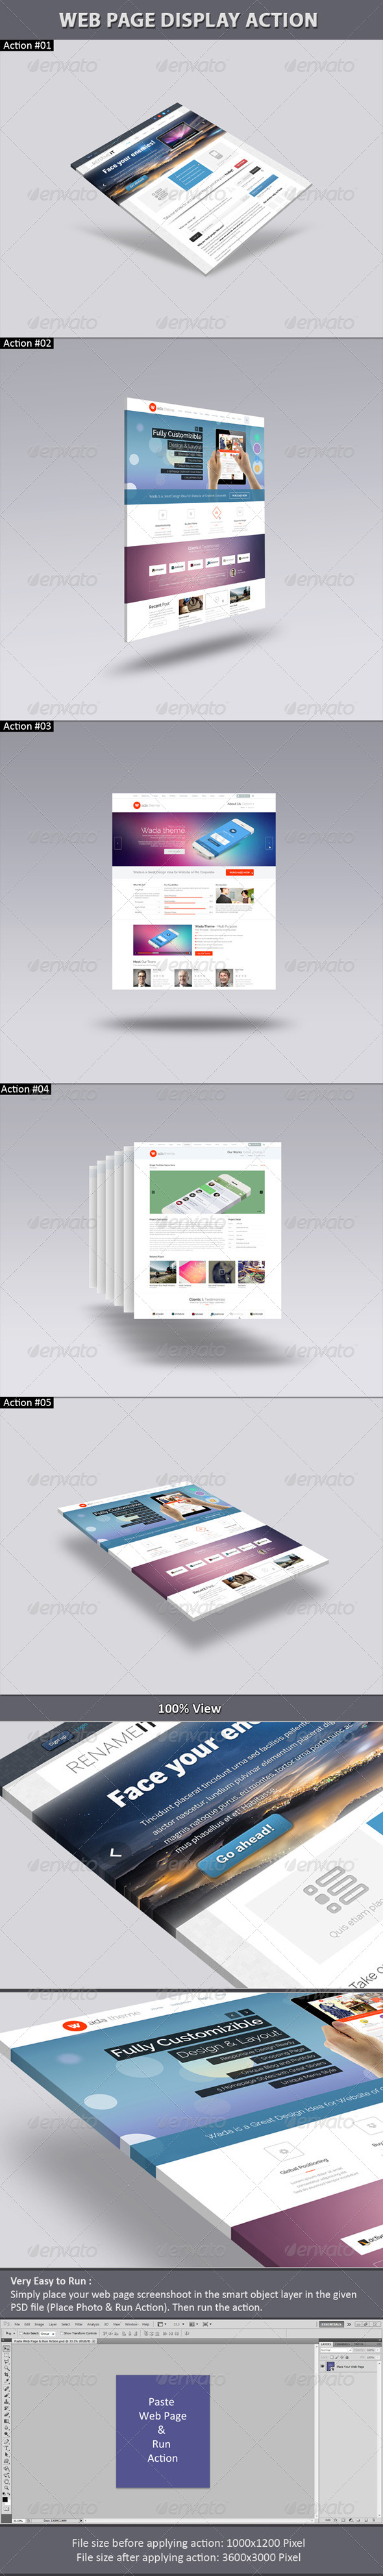 GraphicRiver Web Page Display Action 6458791